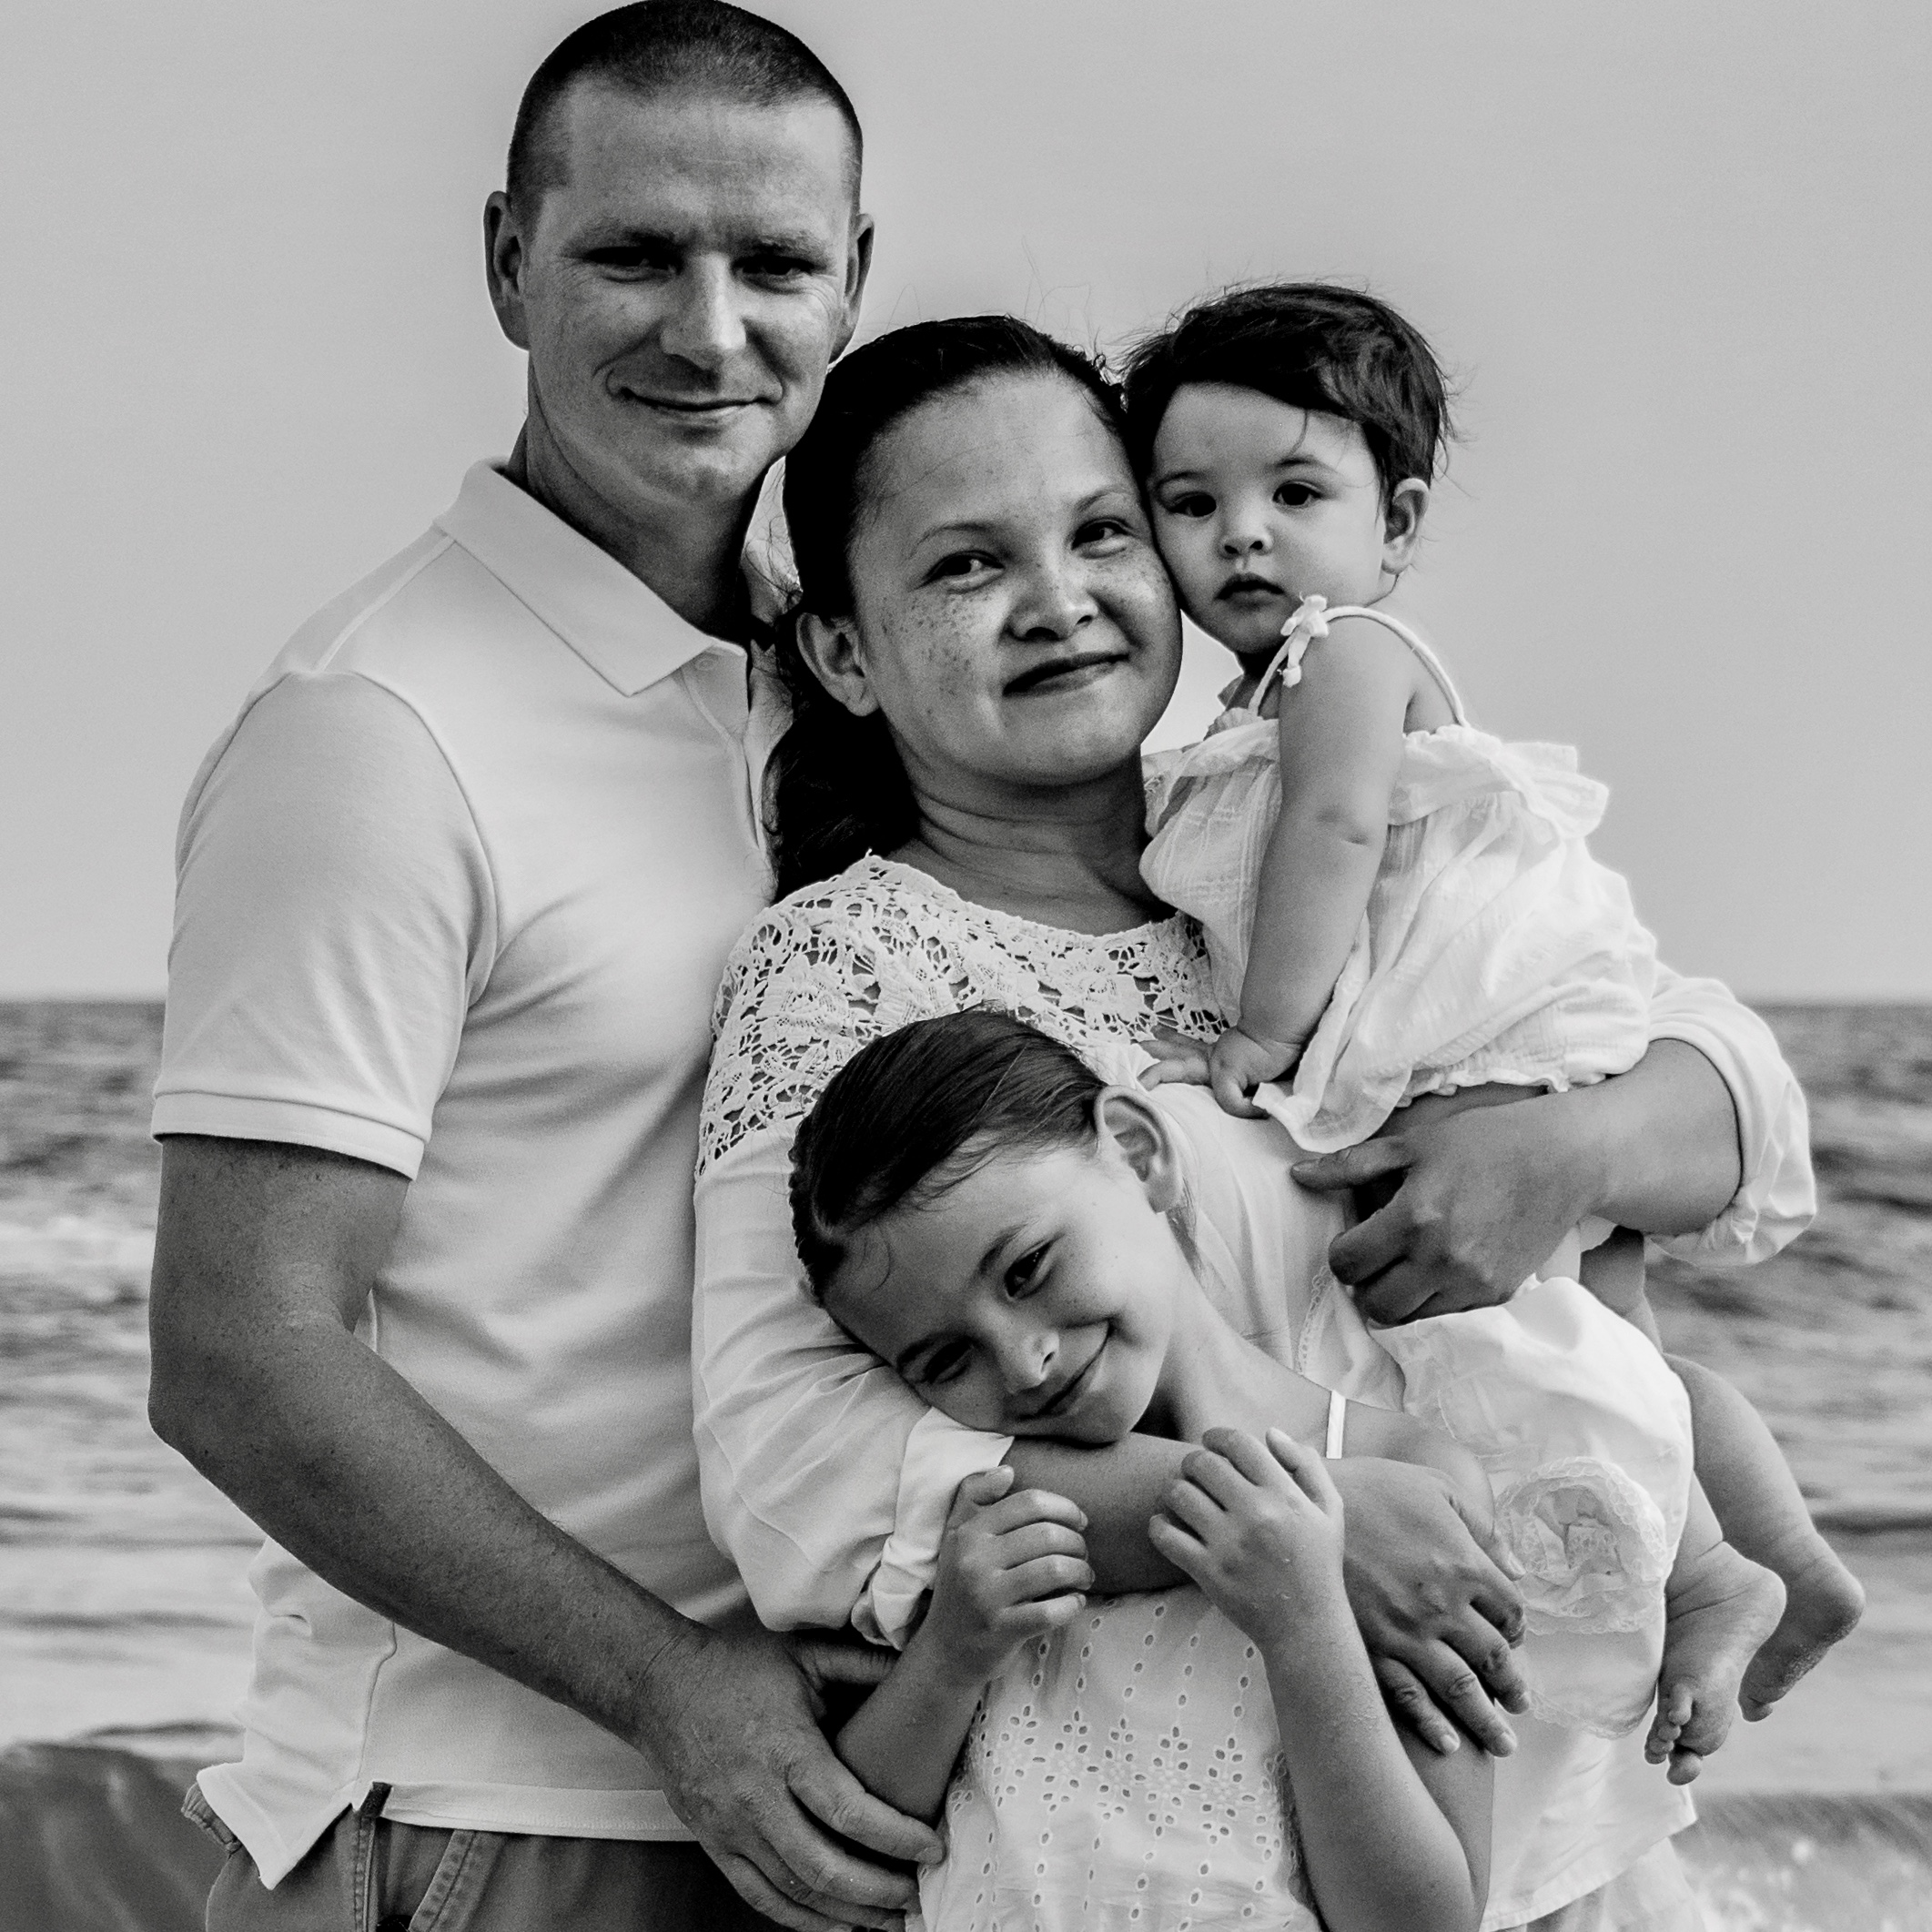 Maria-Teresa King pictured with her husband and two daughters on a beach. King completed her degree in Health Services Administration from UL Lafayette.